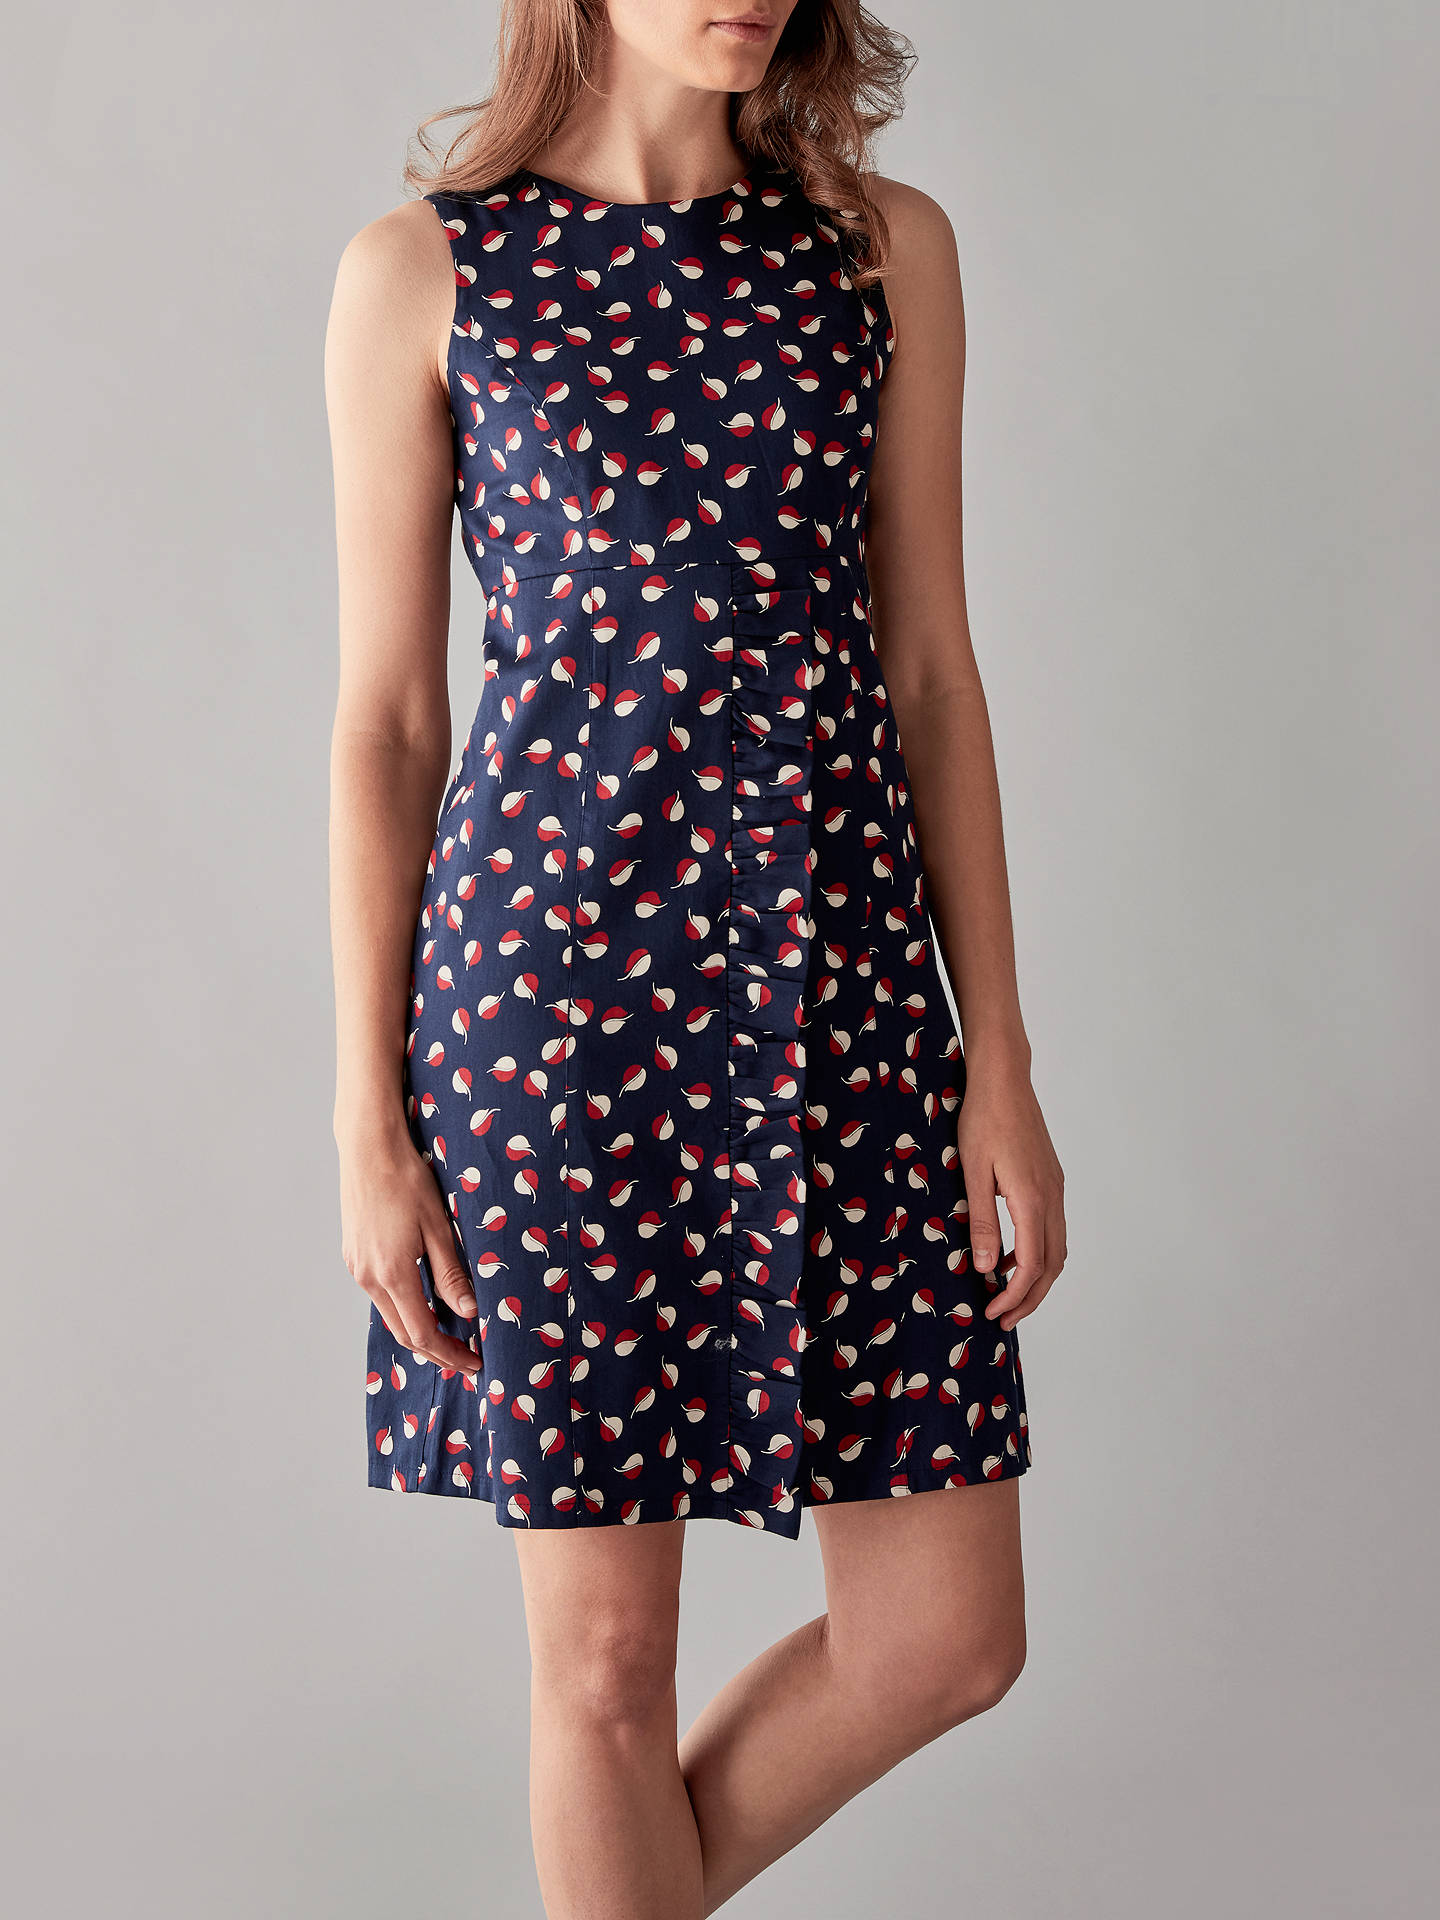 BuyPeople Tree V&A Seed Print Frill Dress, Navy, 8 Online at johnlewis.com